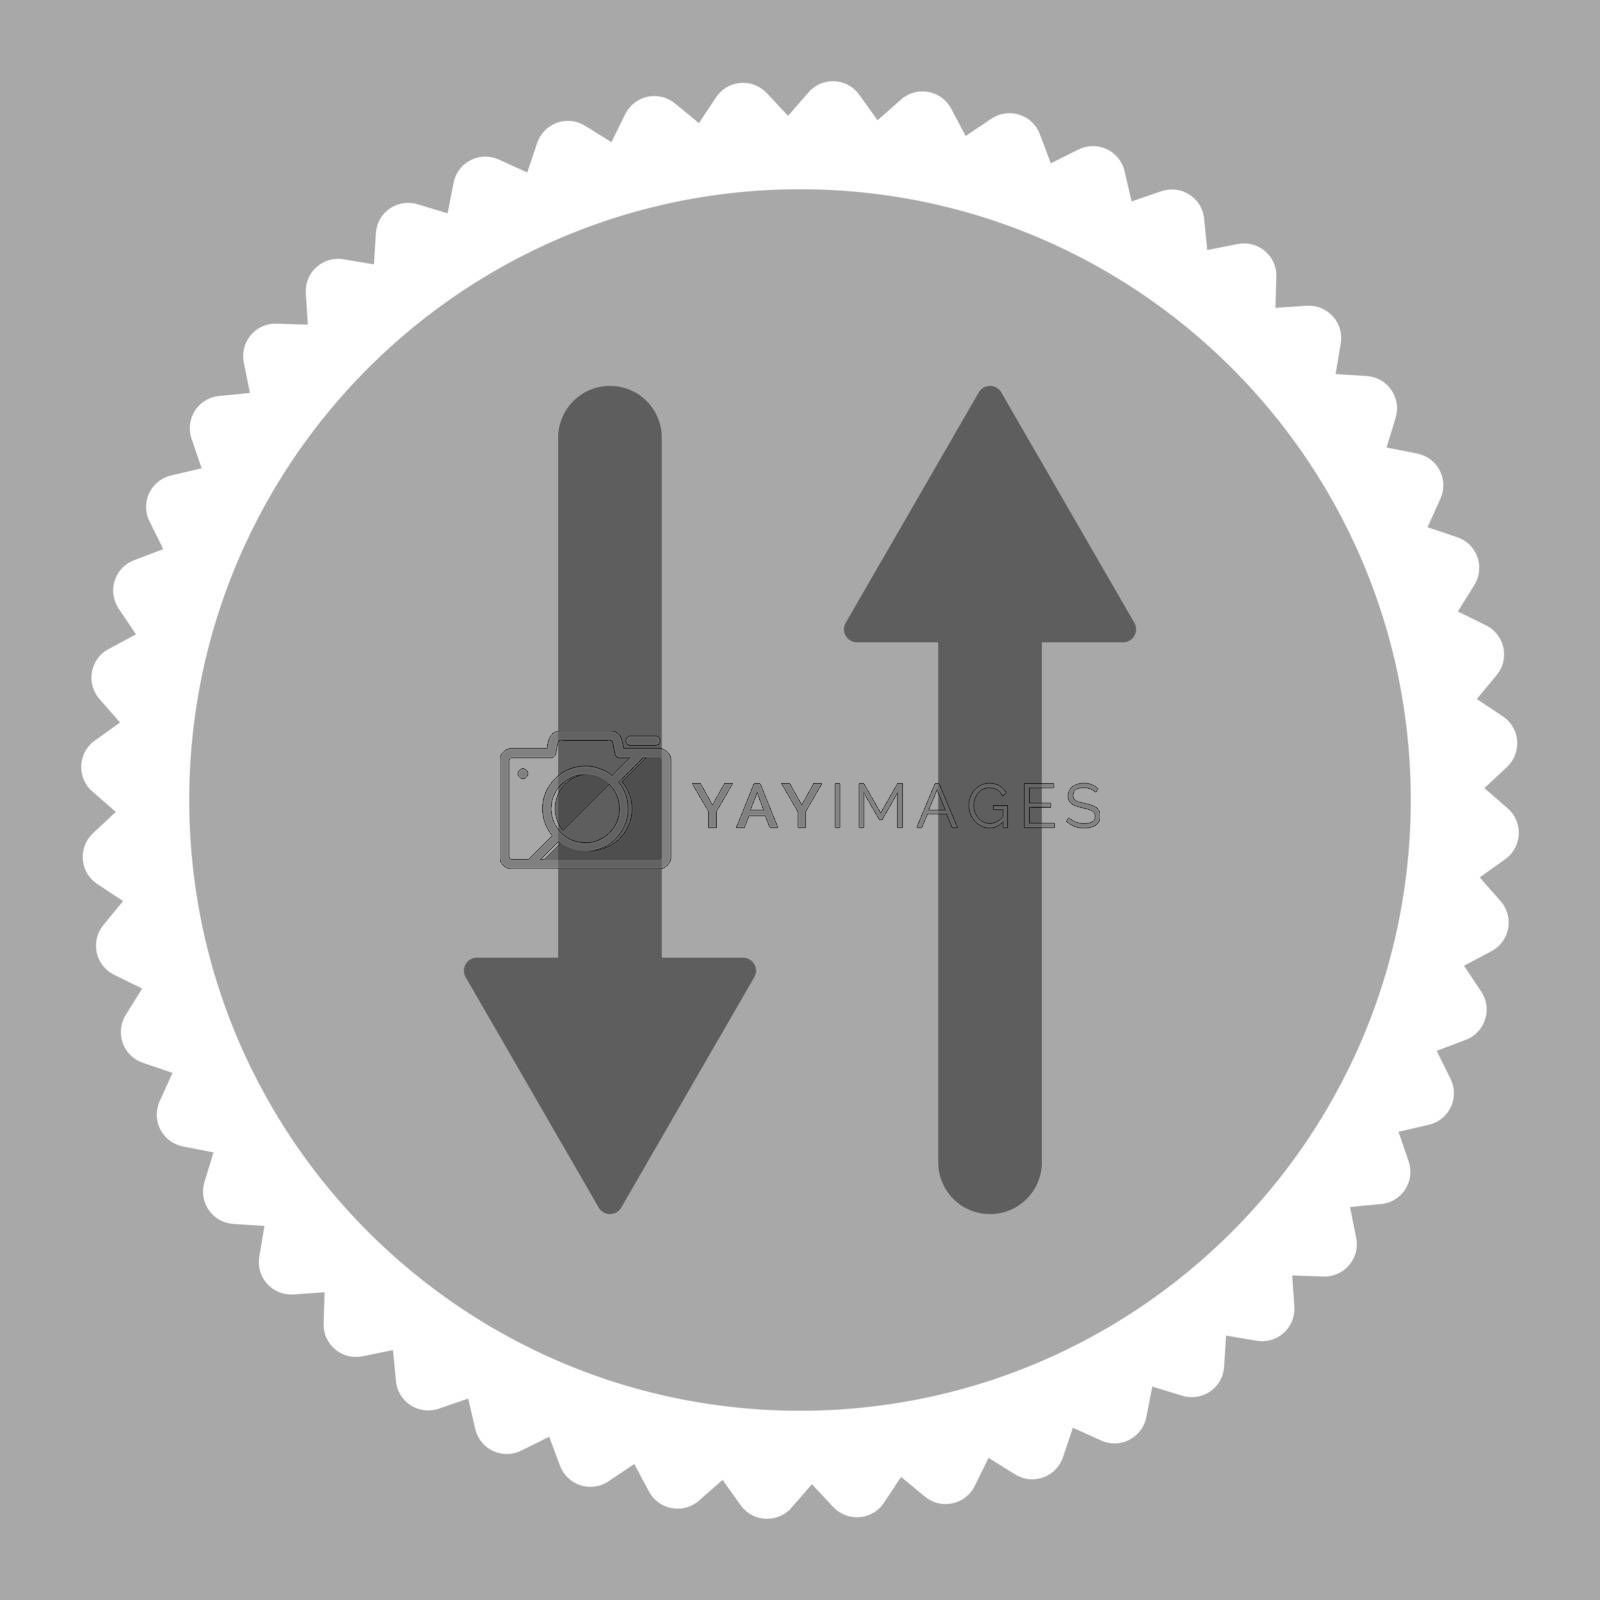 Arrows Exchange Vertical flat dark gray and white colors round stamp icon by Aha-Soft